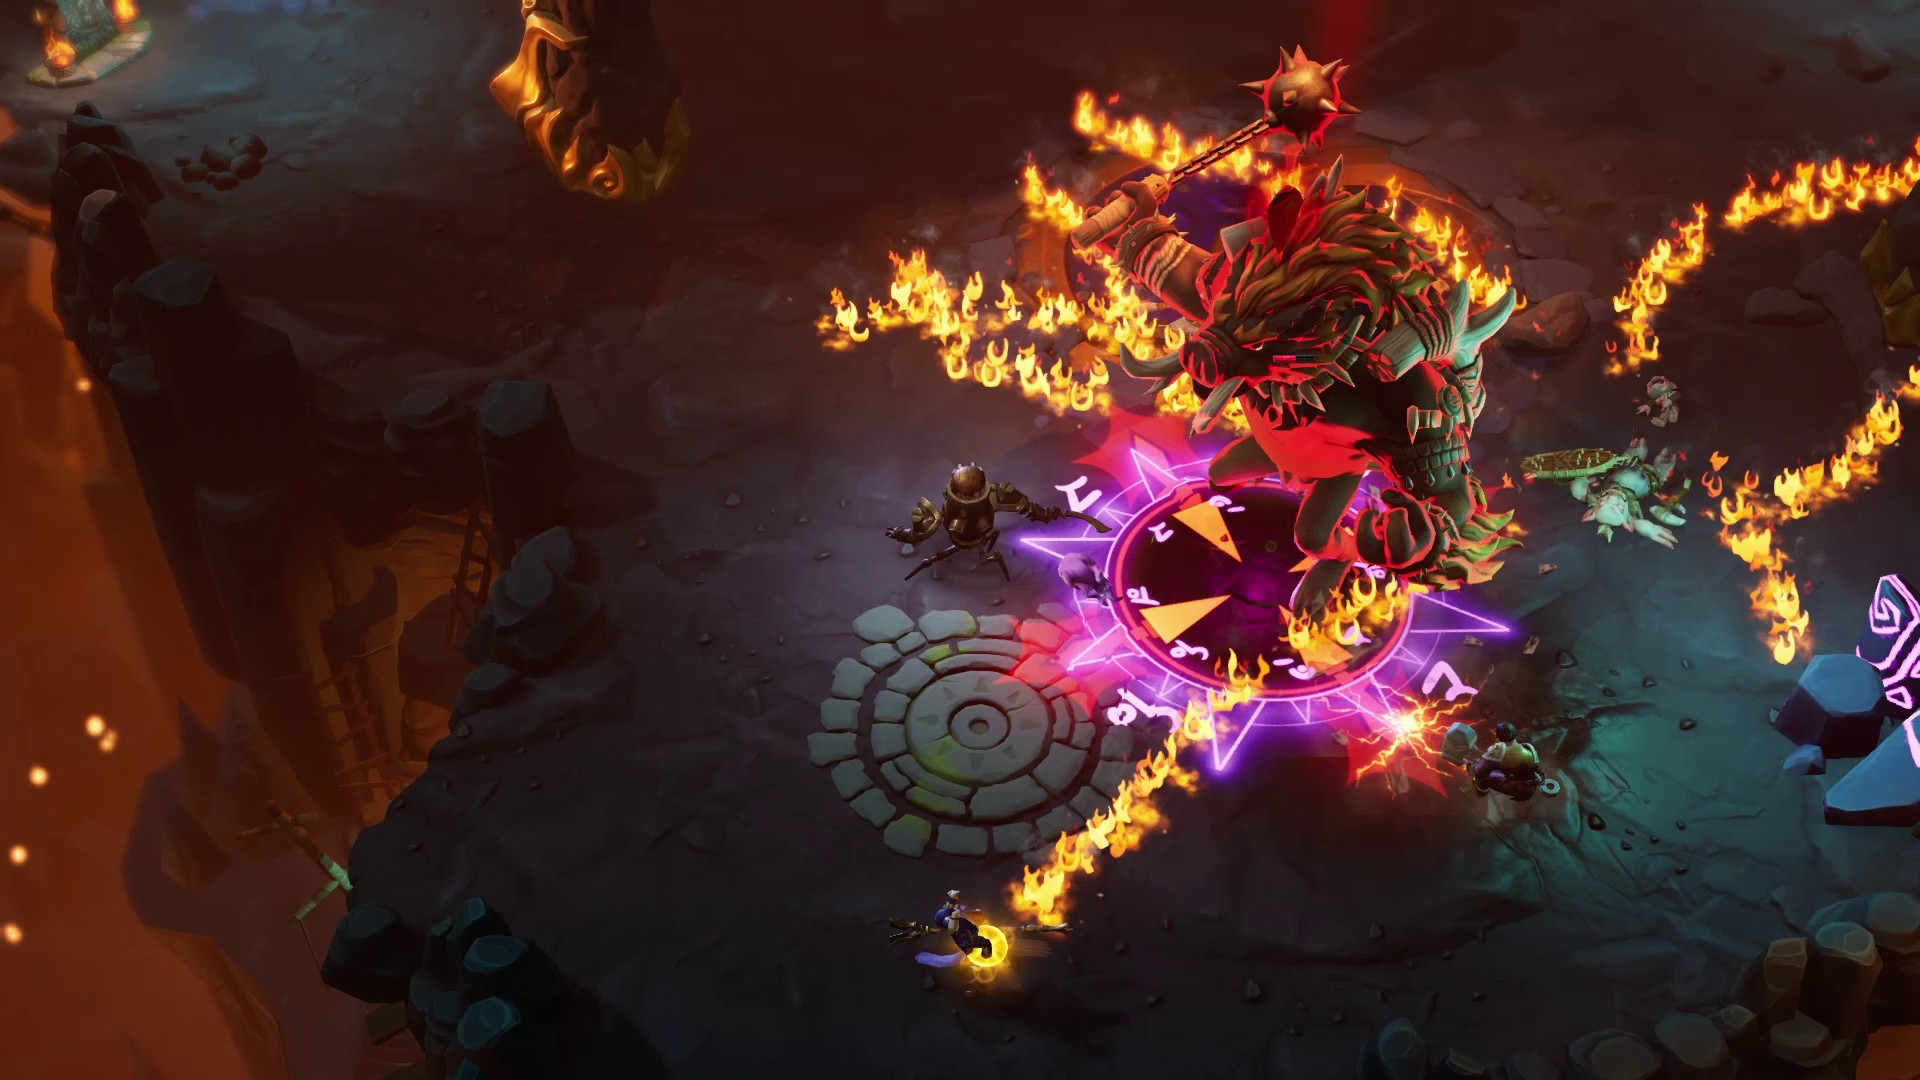 Find the best laptop for Torchlight III